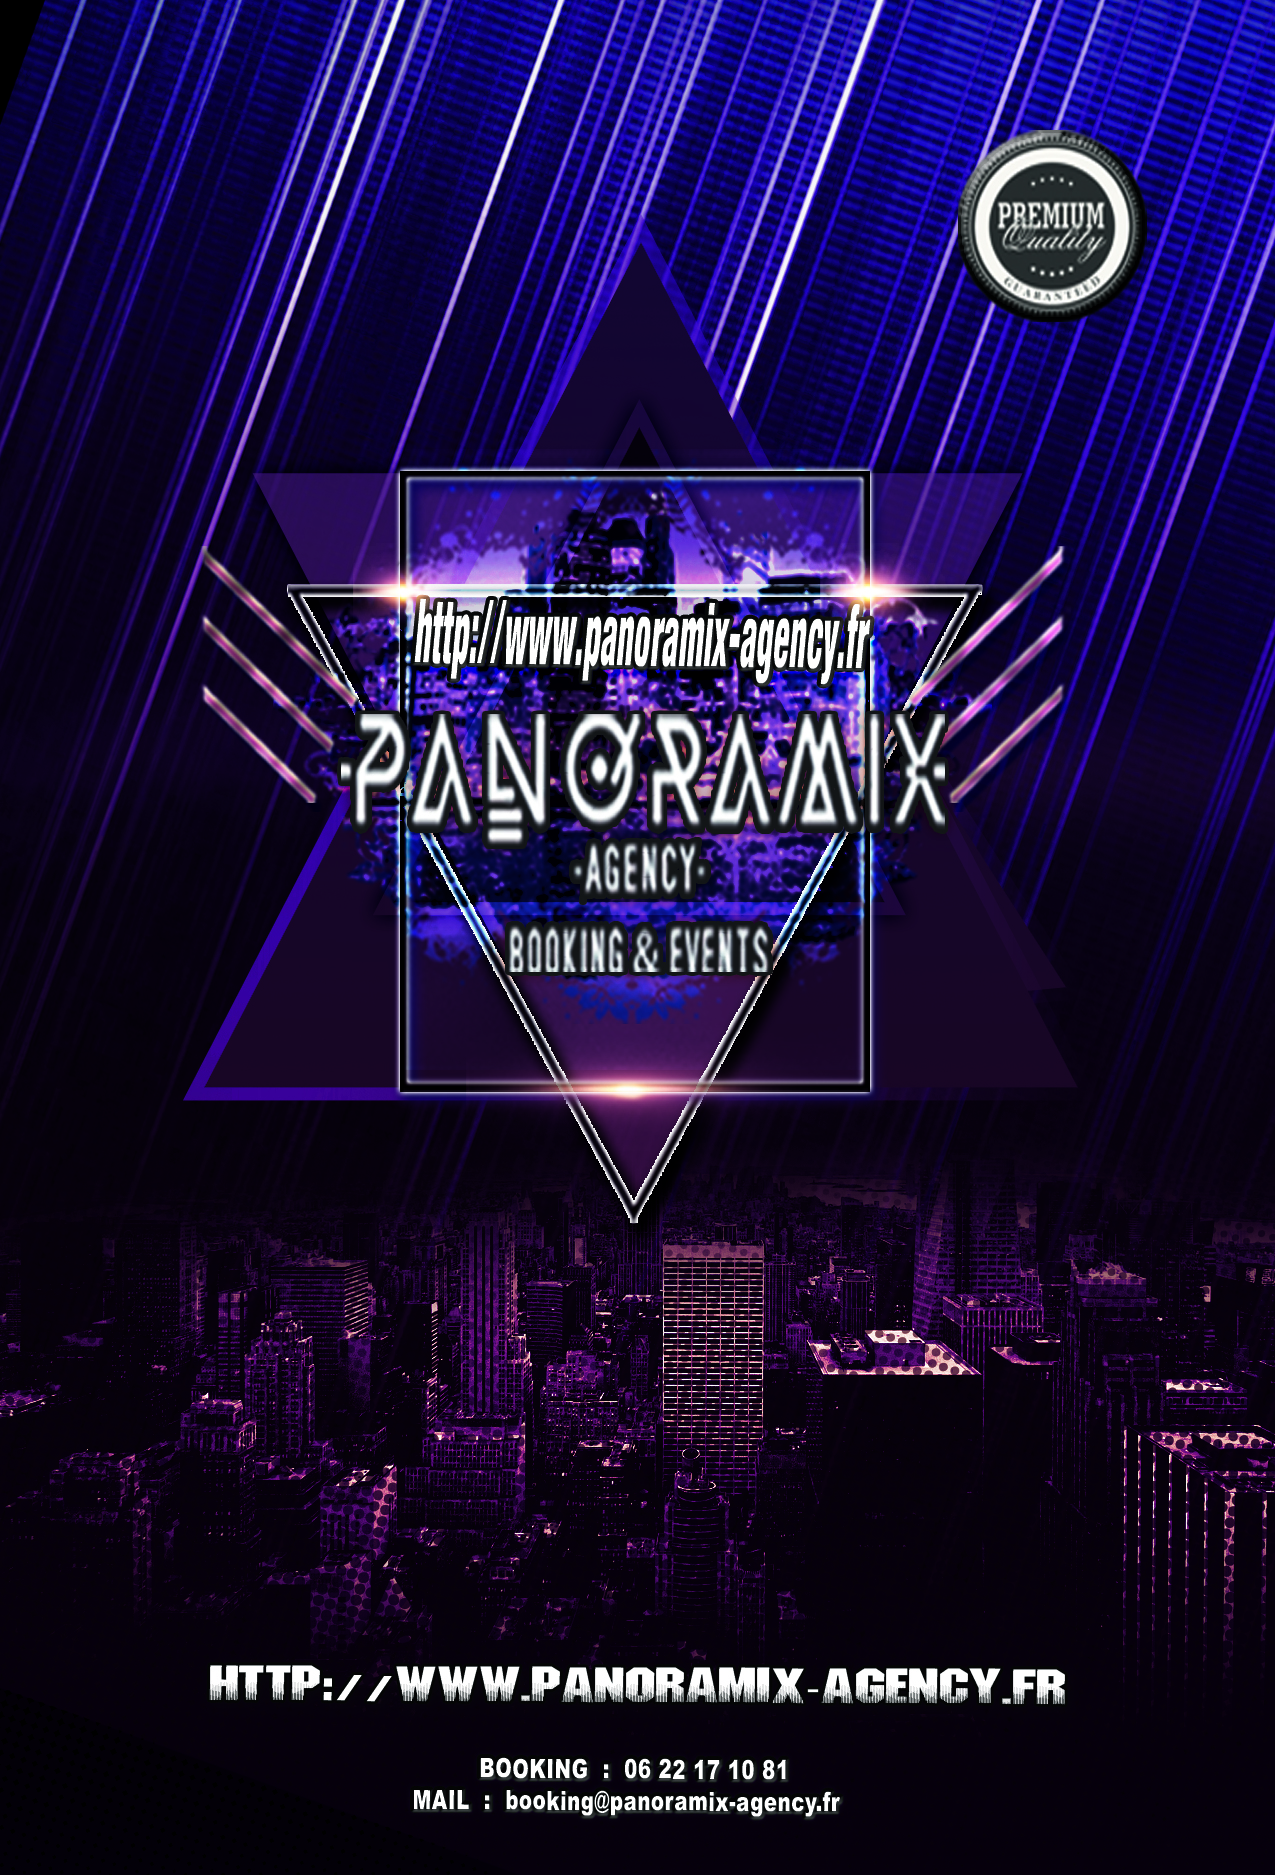 http://panoramix-radio-station.com/wp-content/uploads/2017/06/1-AFFICHE-PANORAMIX-AGENCY-TRIANGLE-1.jpg